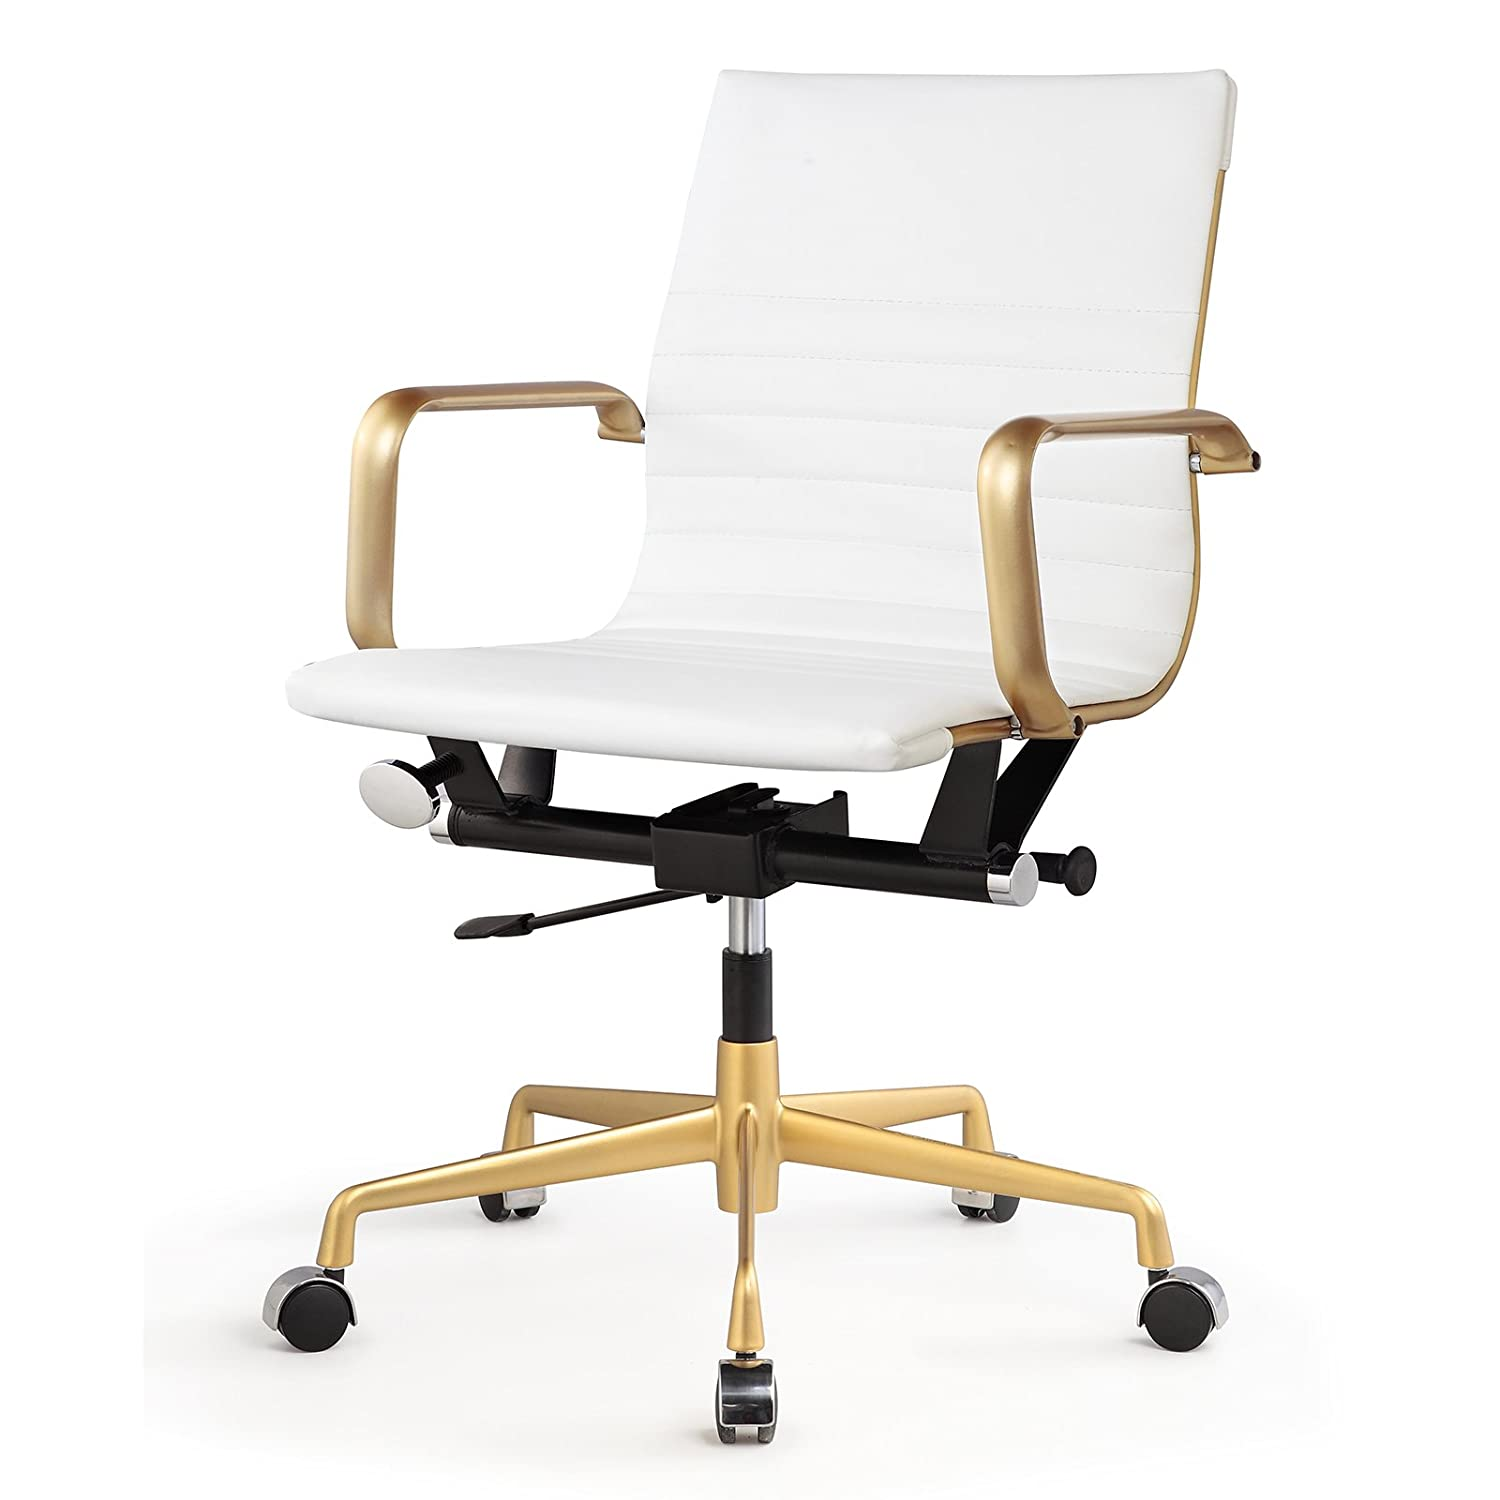 Amazon.com: MEELANO 348-GD-WHI Office Chair in Vegan Leather, Gold ...